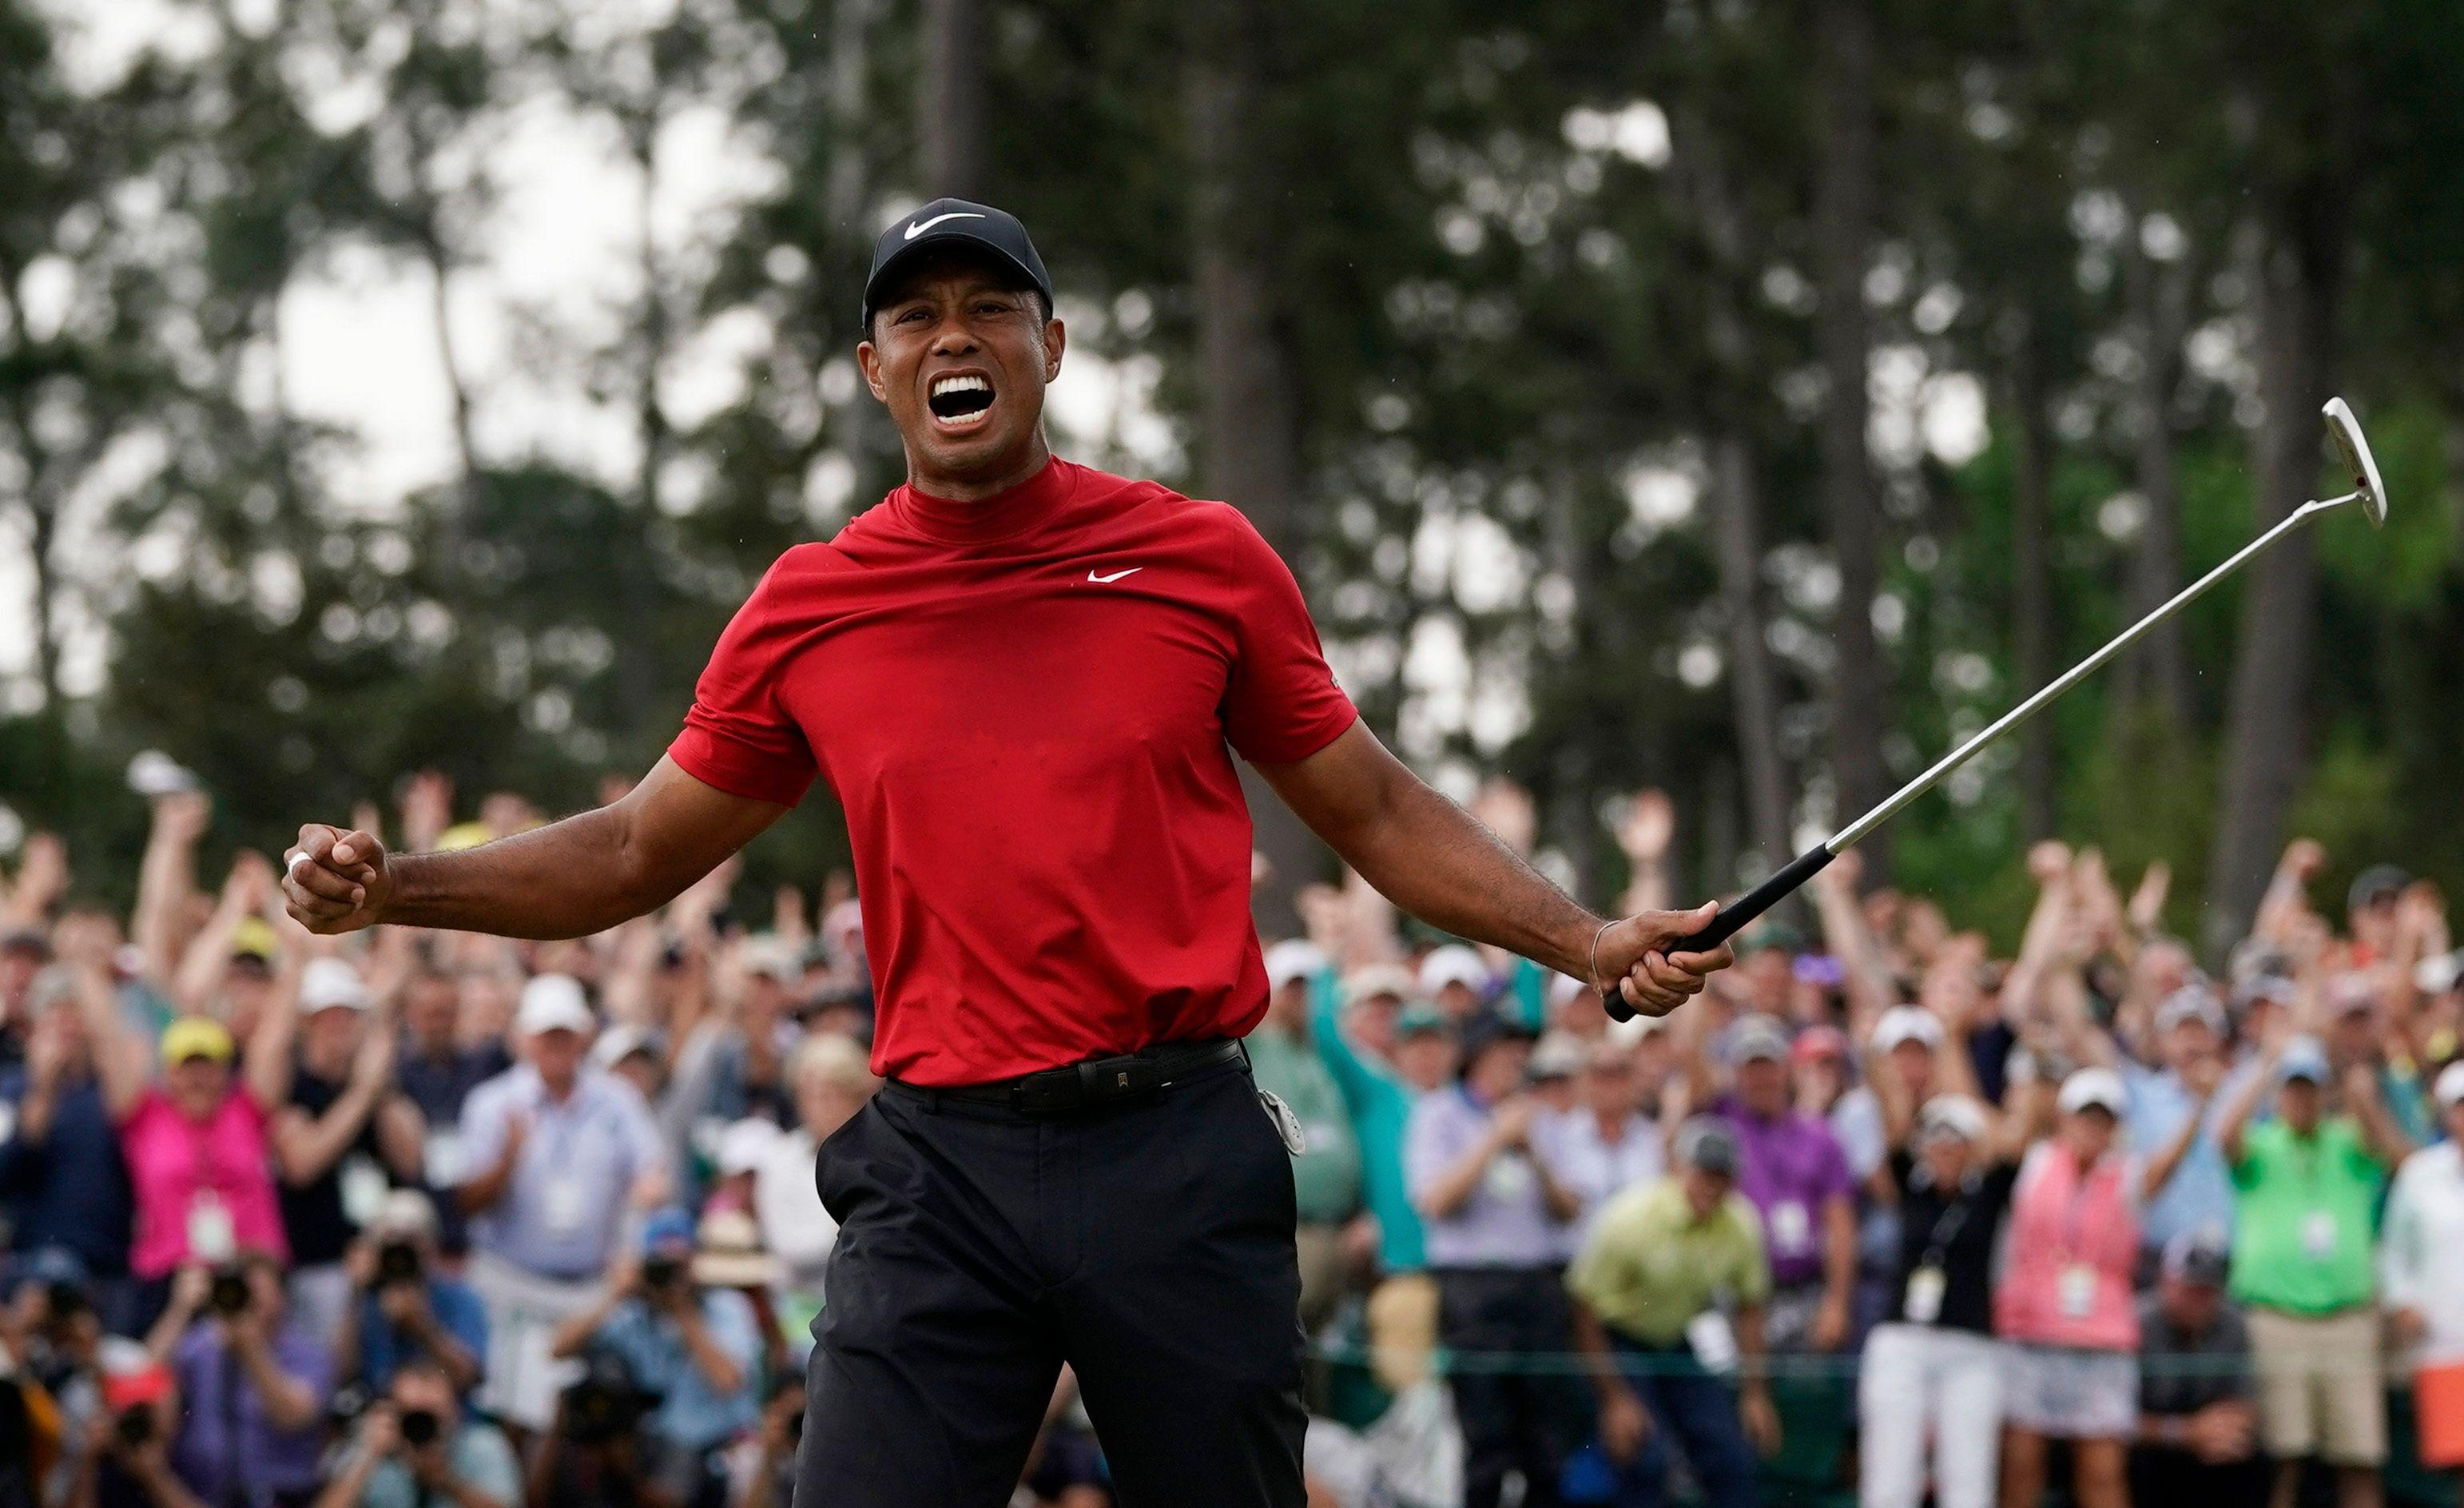 ed433cc1 Tiger Woods' epic Masters win makes this golf equipment maker look amazing